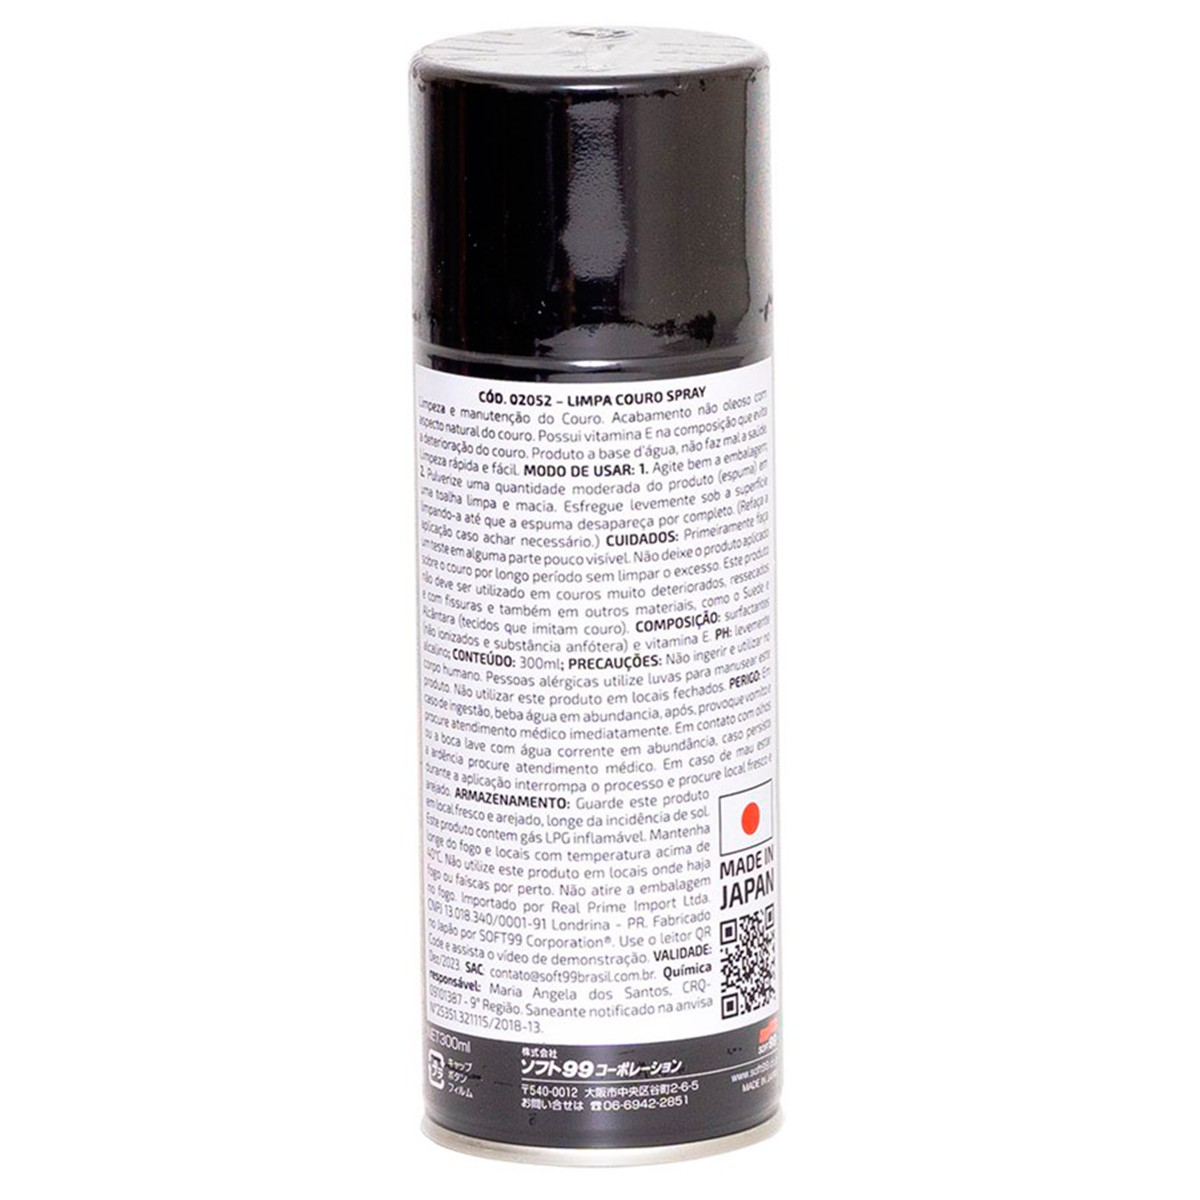 Limpa Couro Leather 300ml - Soft99